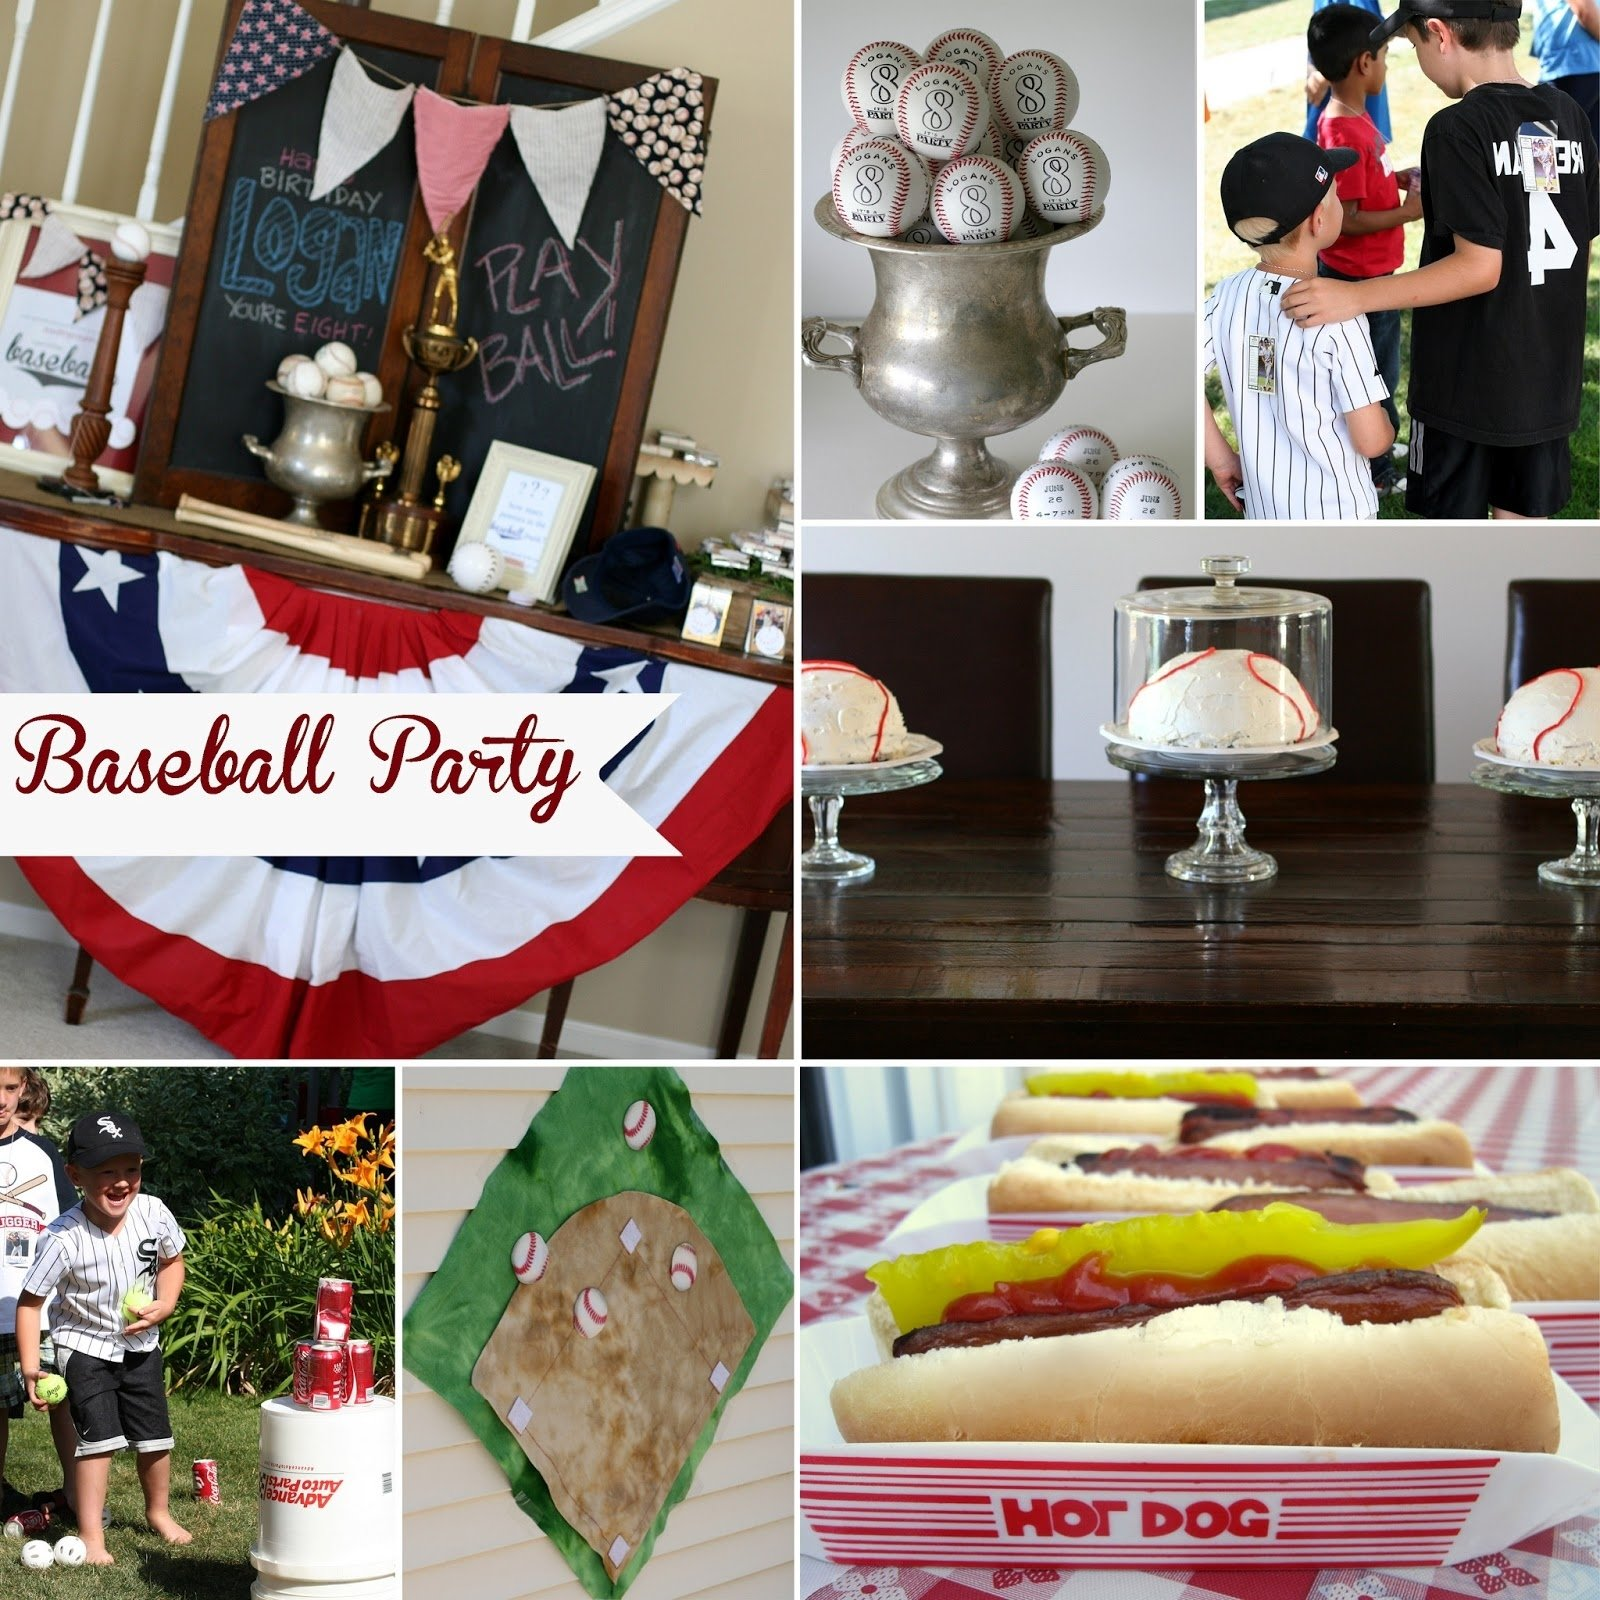 10 Nice Birthday Party Ideas For 7 Year Old Boy Notable Nest Baseball 2